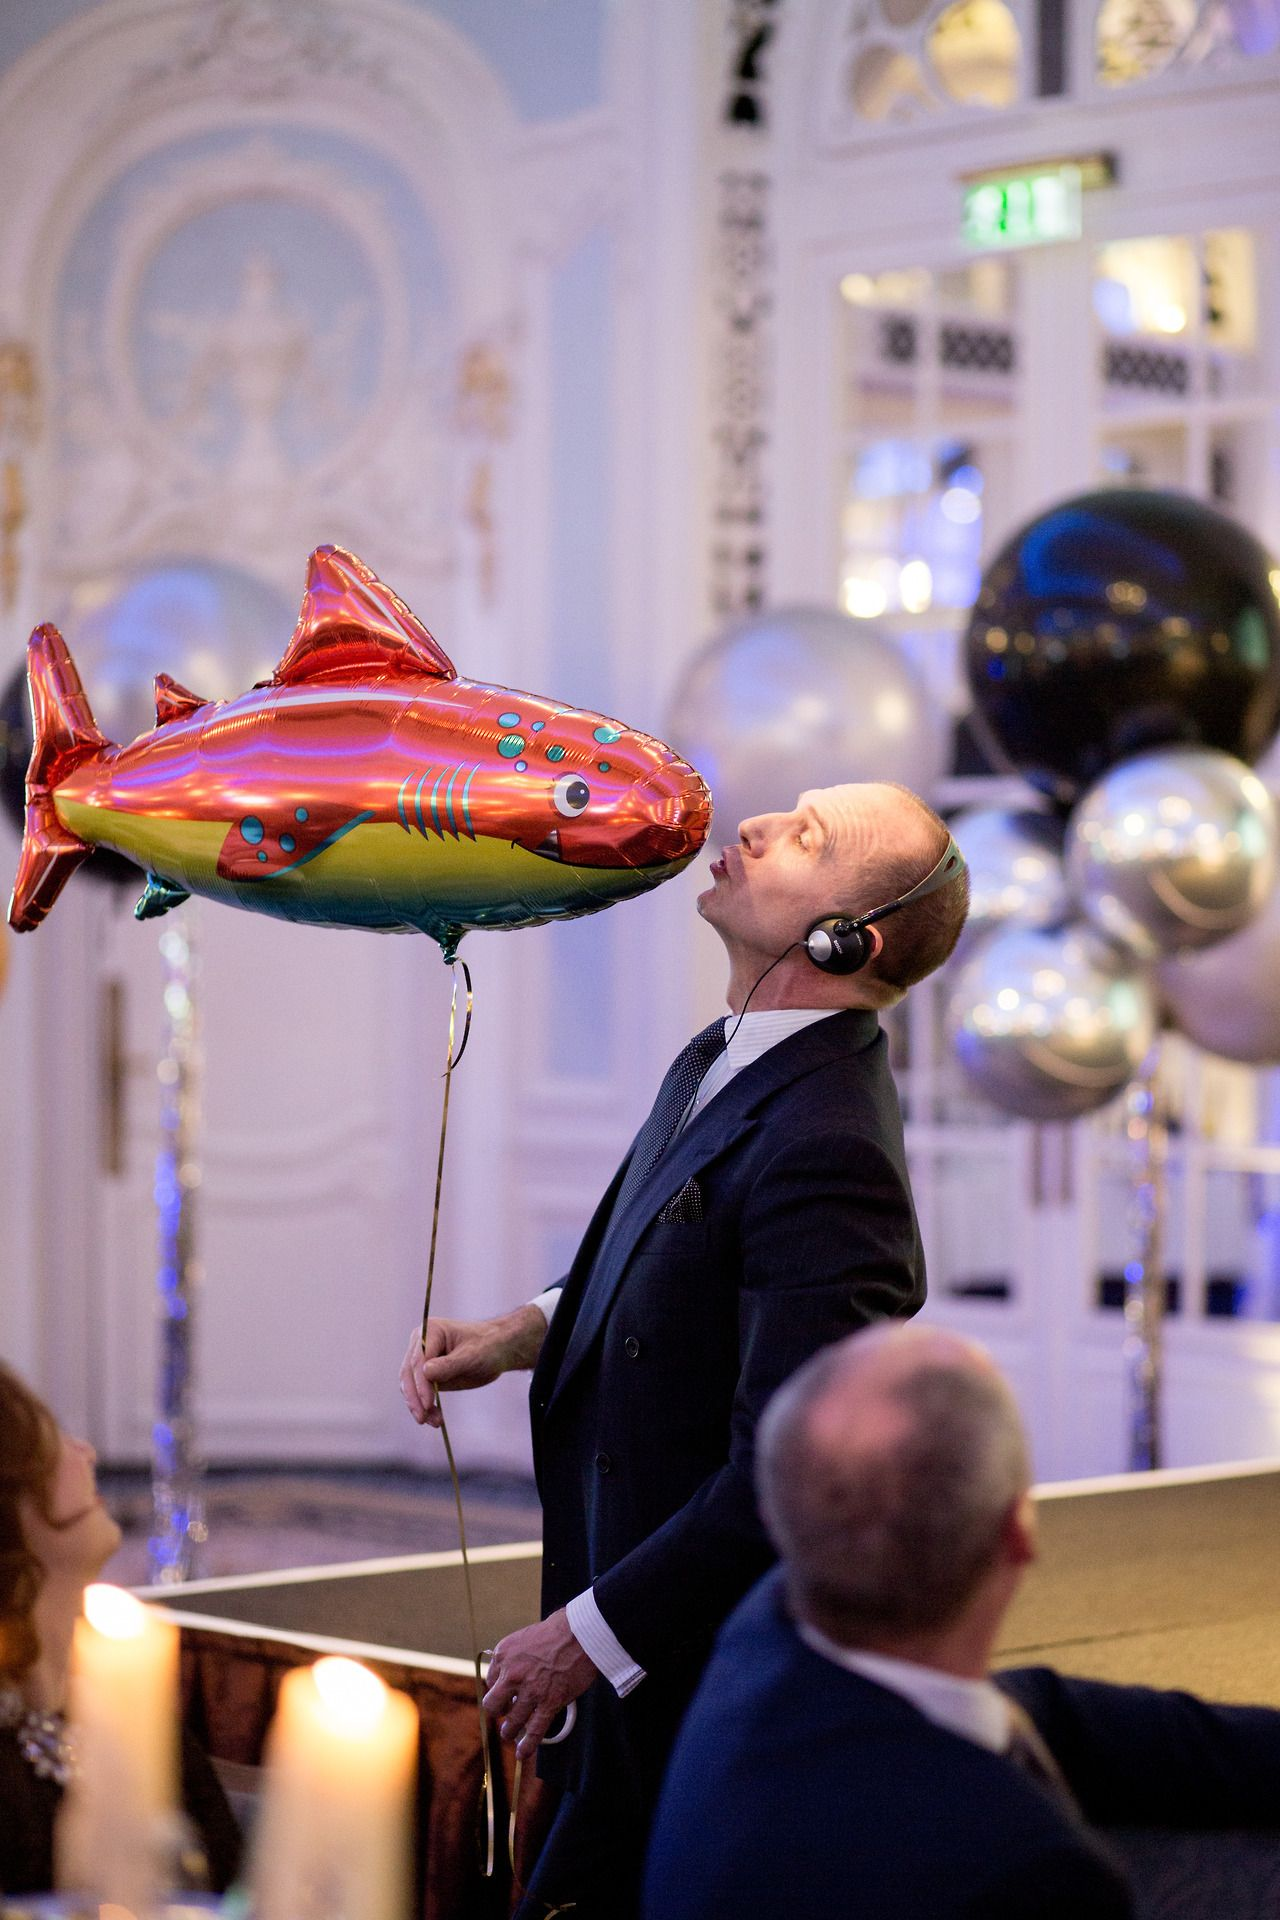 Ralph Fiennes and his baloon at the Russia old new year